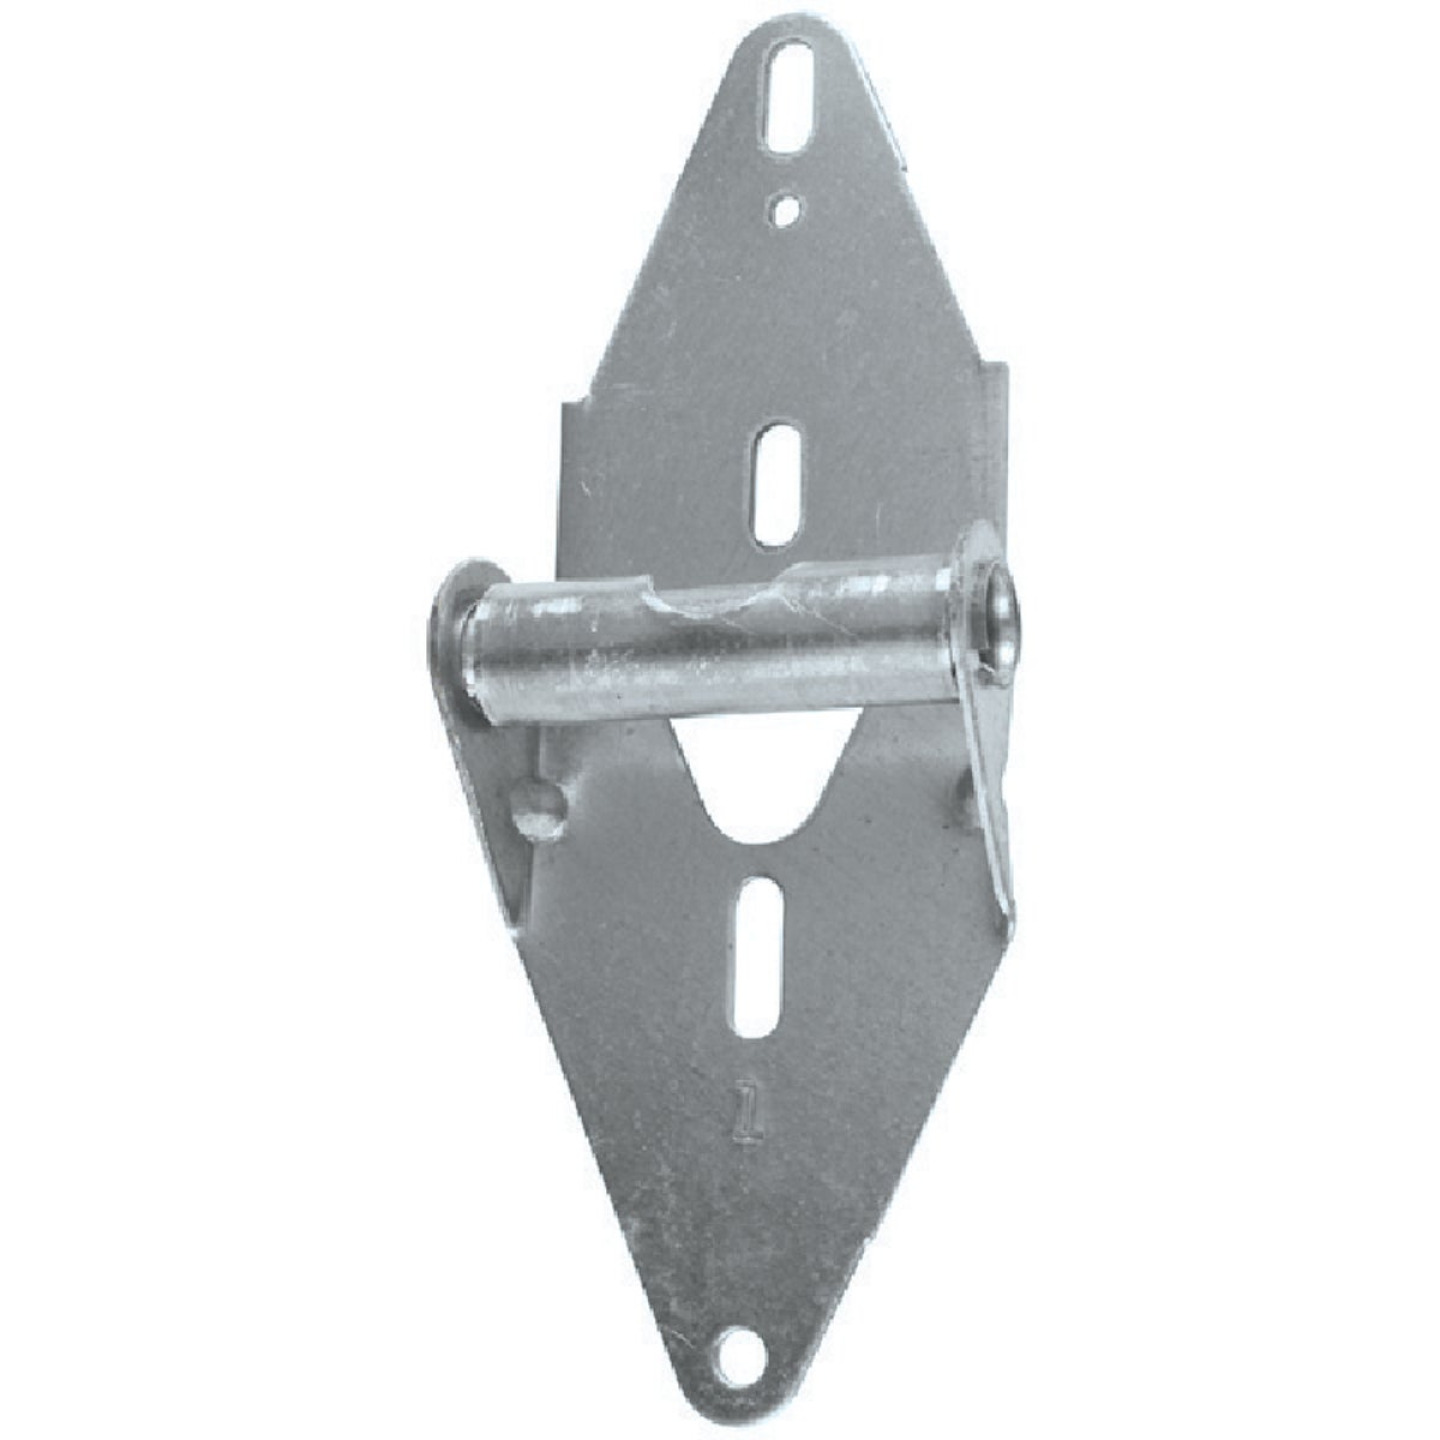 National #1 14 Ga. Galvanized Steel Garage Door Hinge Image 2